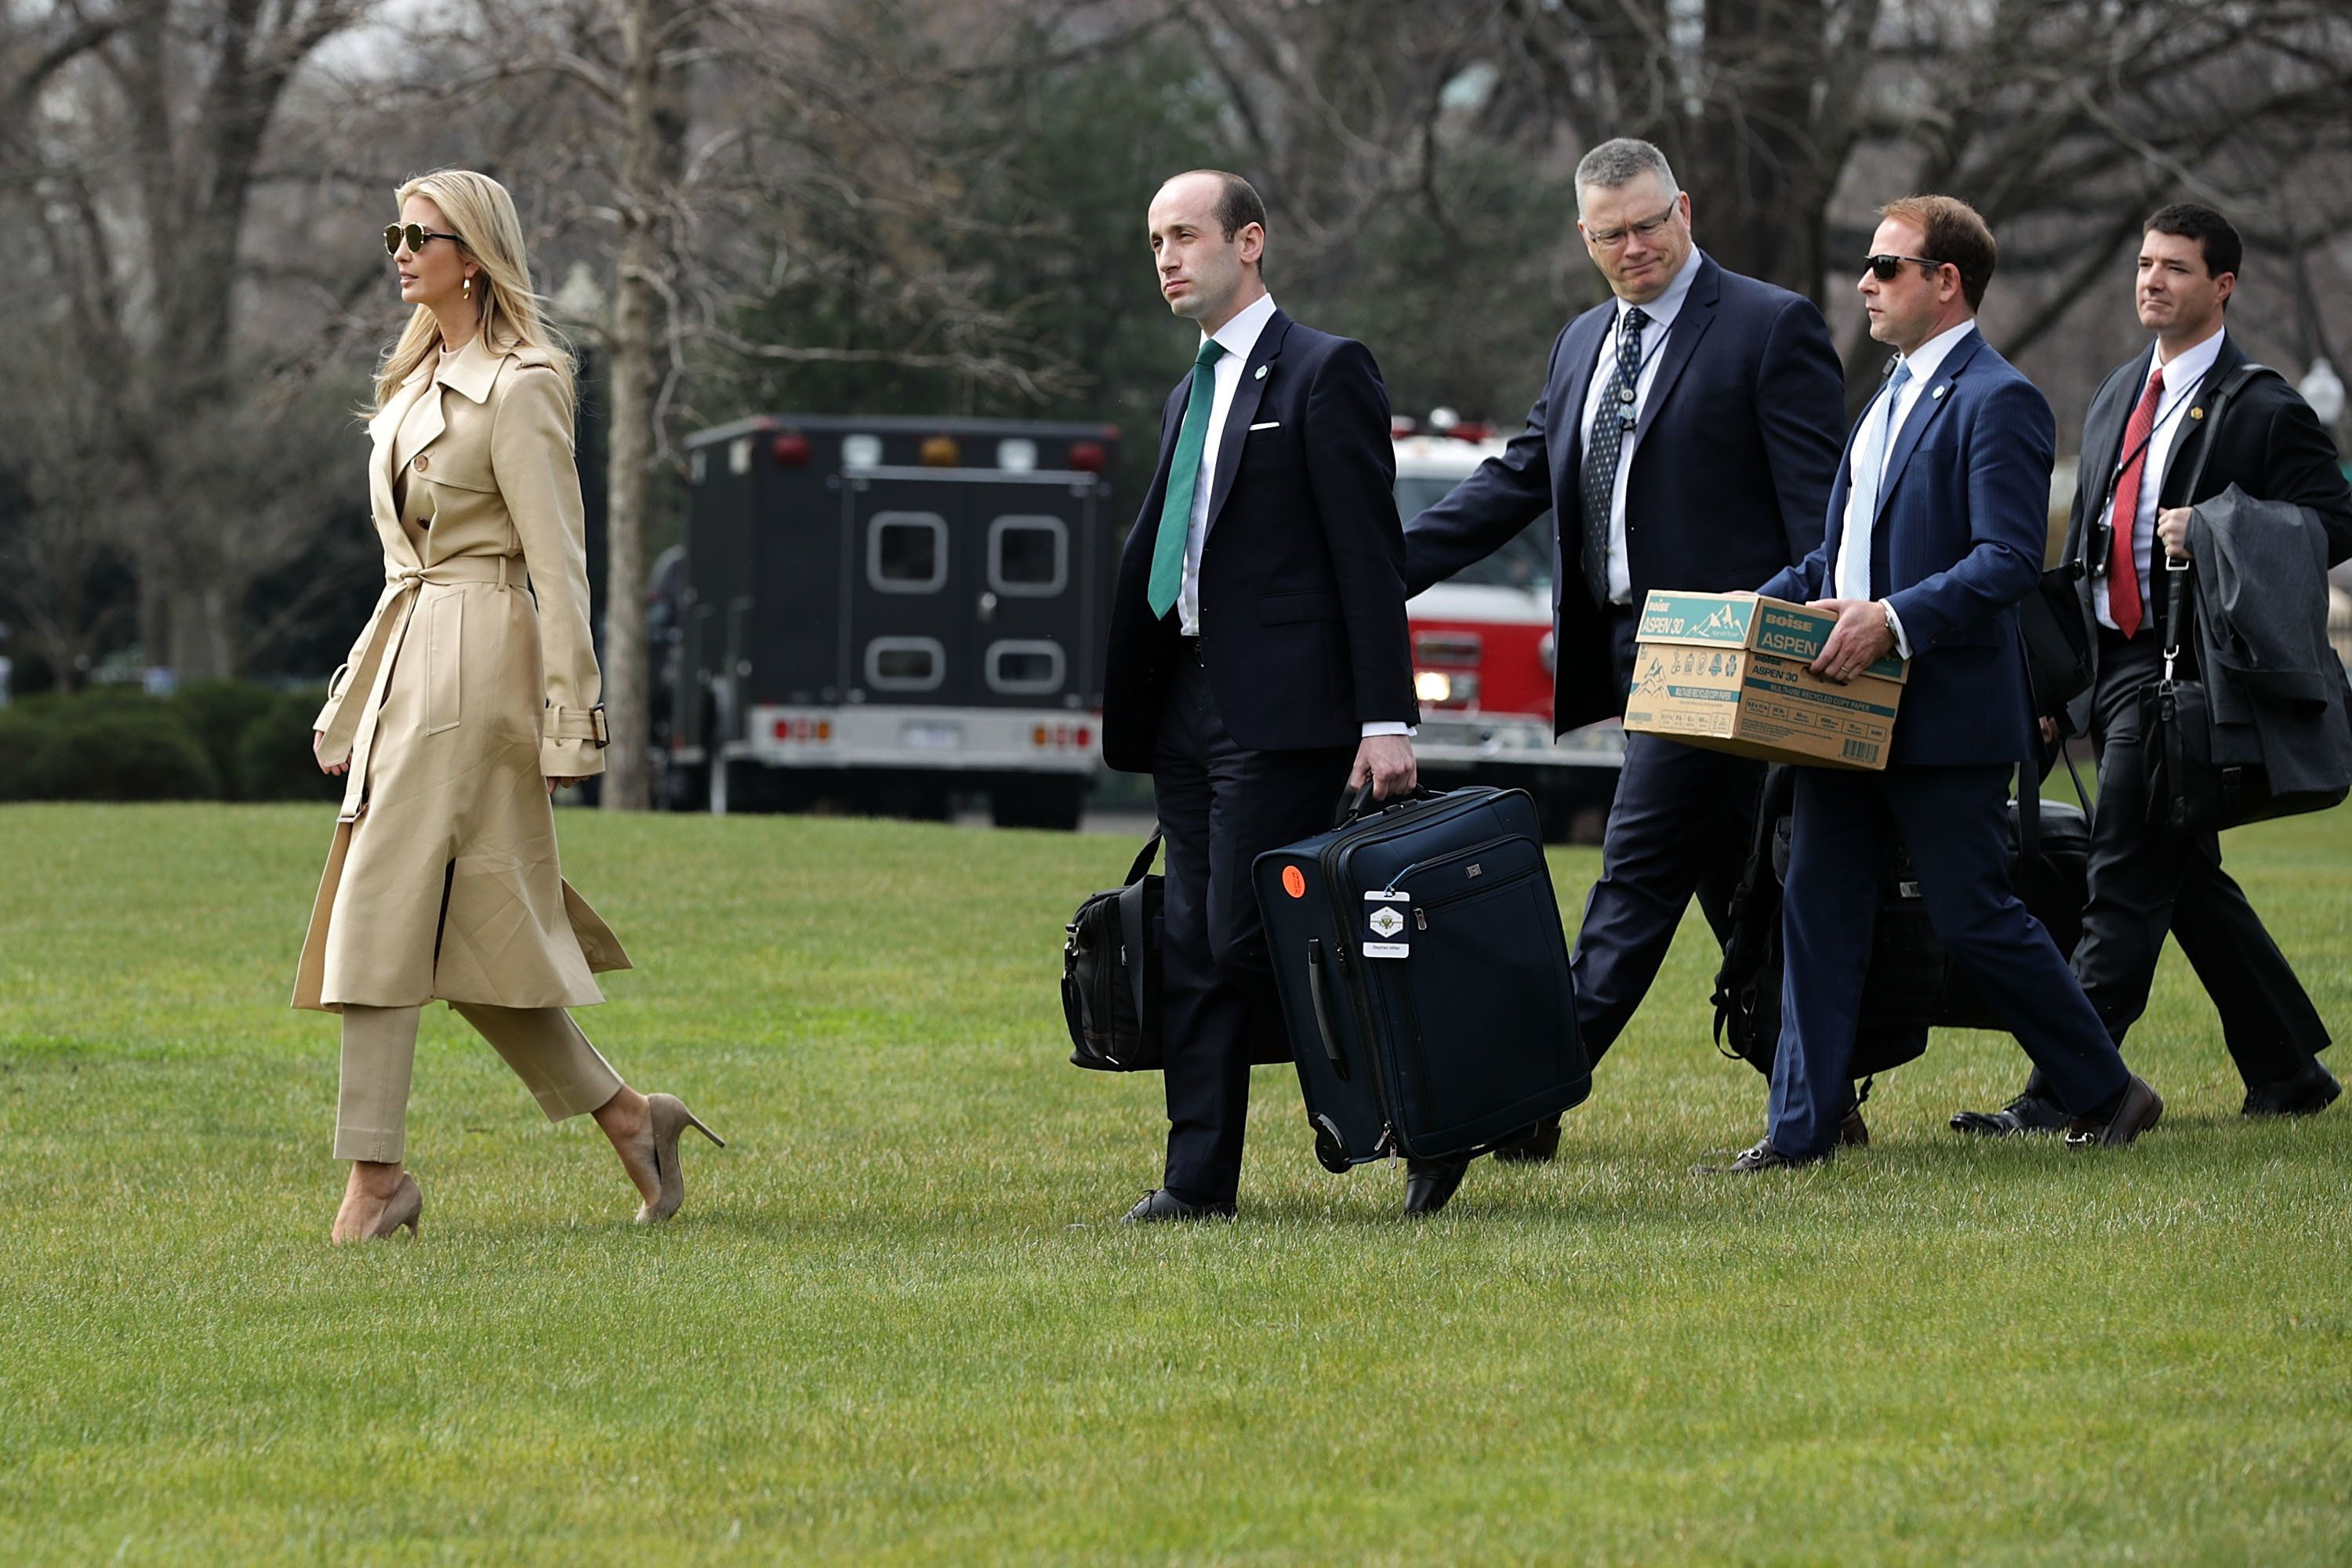 WASHINGTON, DC - MARCH 29:  (L-R)  Ivanka Trump, White House Senior Advisor Stephen Miller, Deputy National Security Advisor Ricky Waddell and Deputy Director of Presidential Advance Jordan Karem walk across the South Lawn before departing the White House with U.S. President Donald Trump March 29, 2018 in Washington, DC. President Trump is traveling to Ohio to deliver a speech on infrastructure before continuing on to Palm Beach for the Easter holiday weekend.  (Photo by Chip Somodevilla/Getty Images)